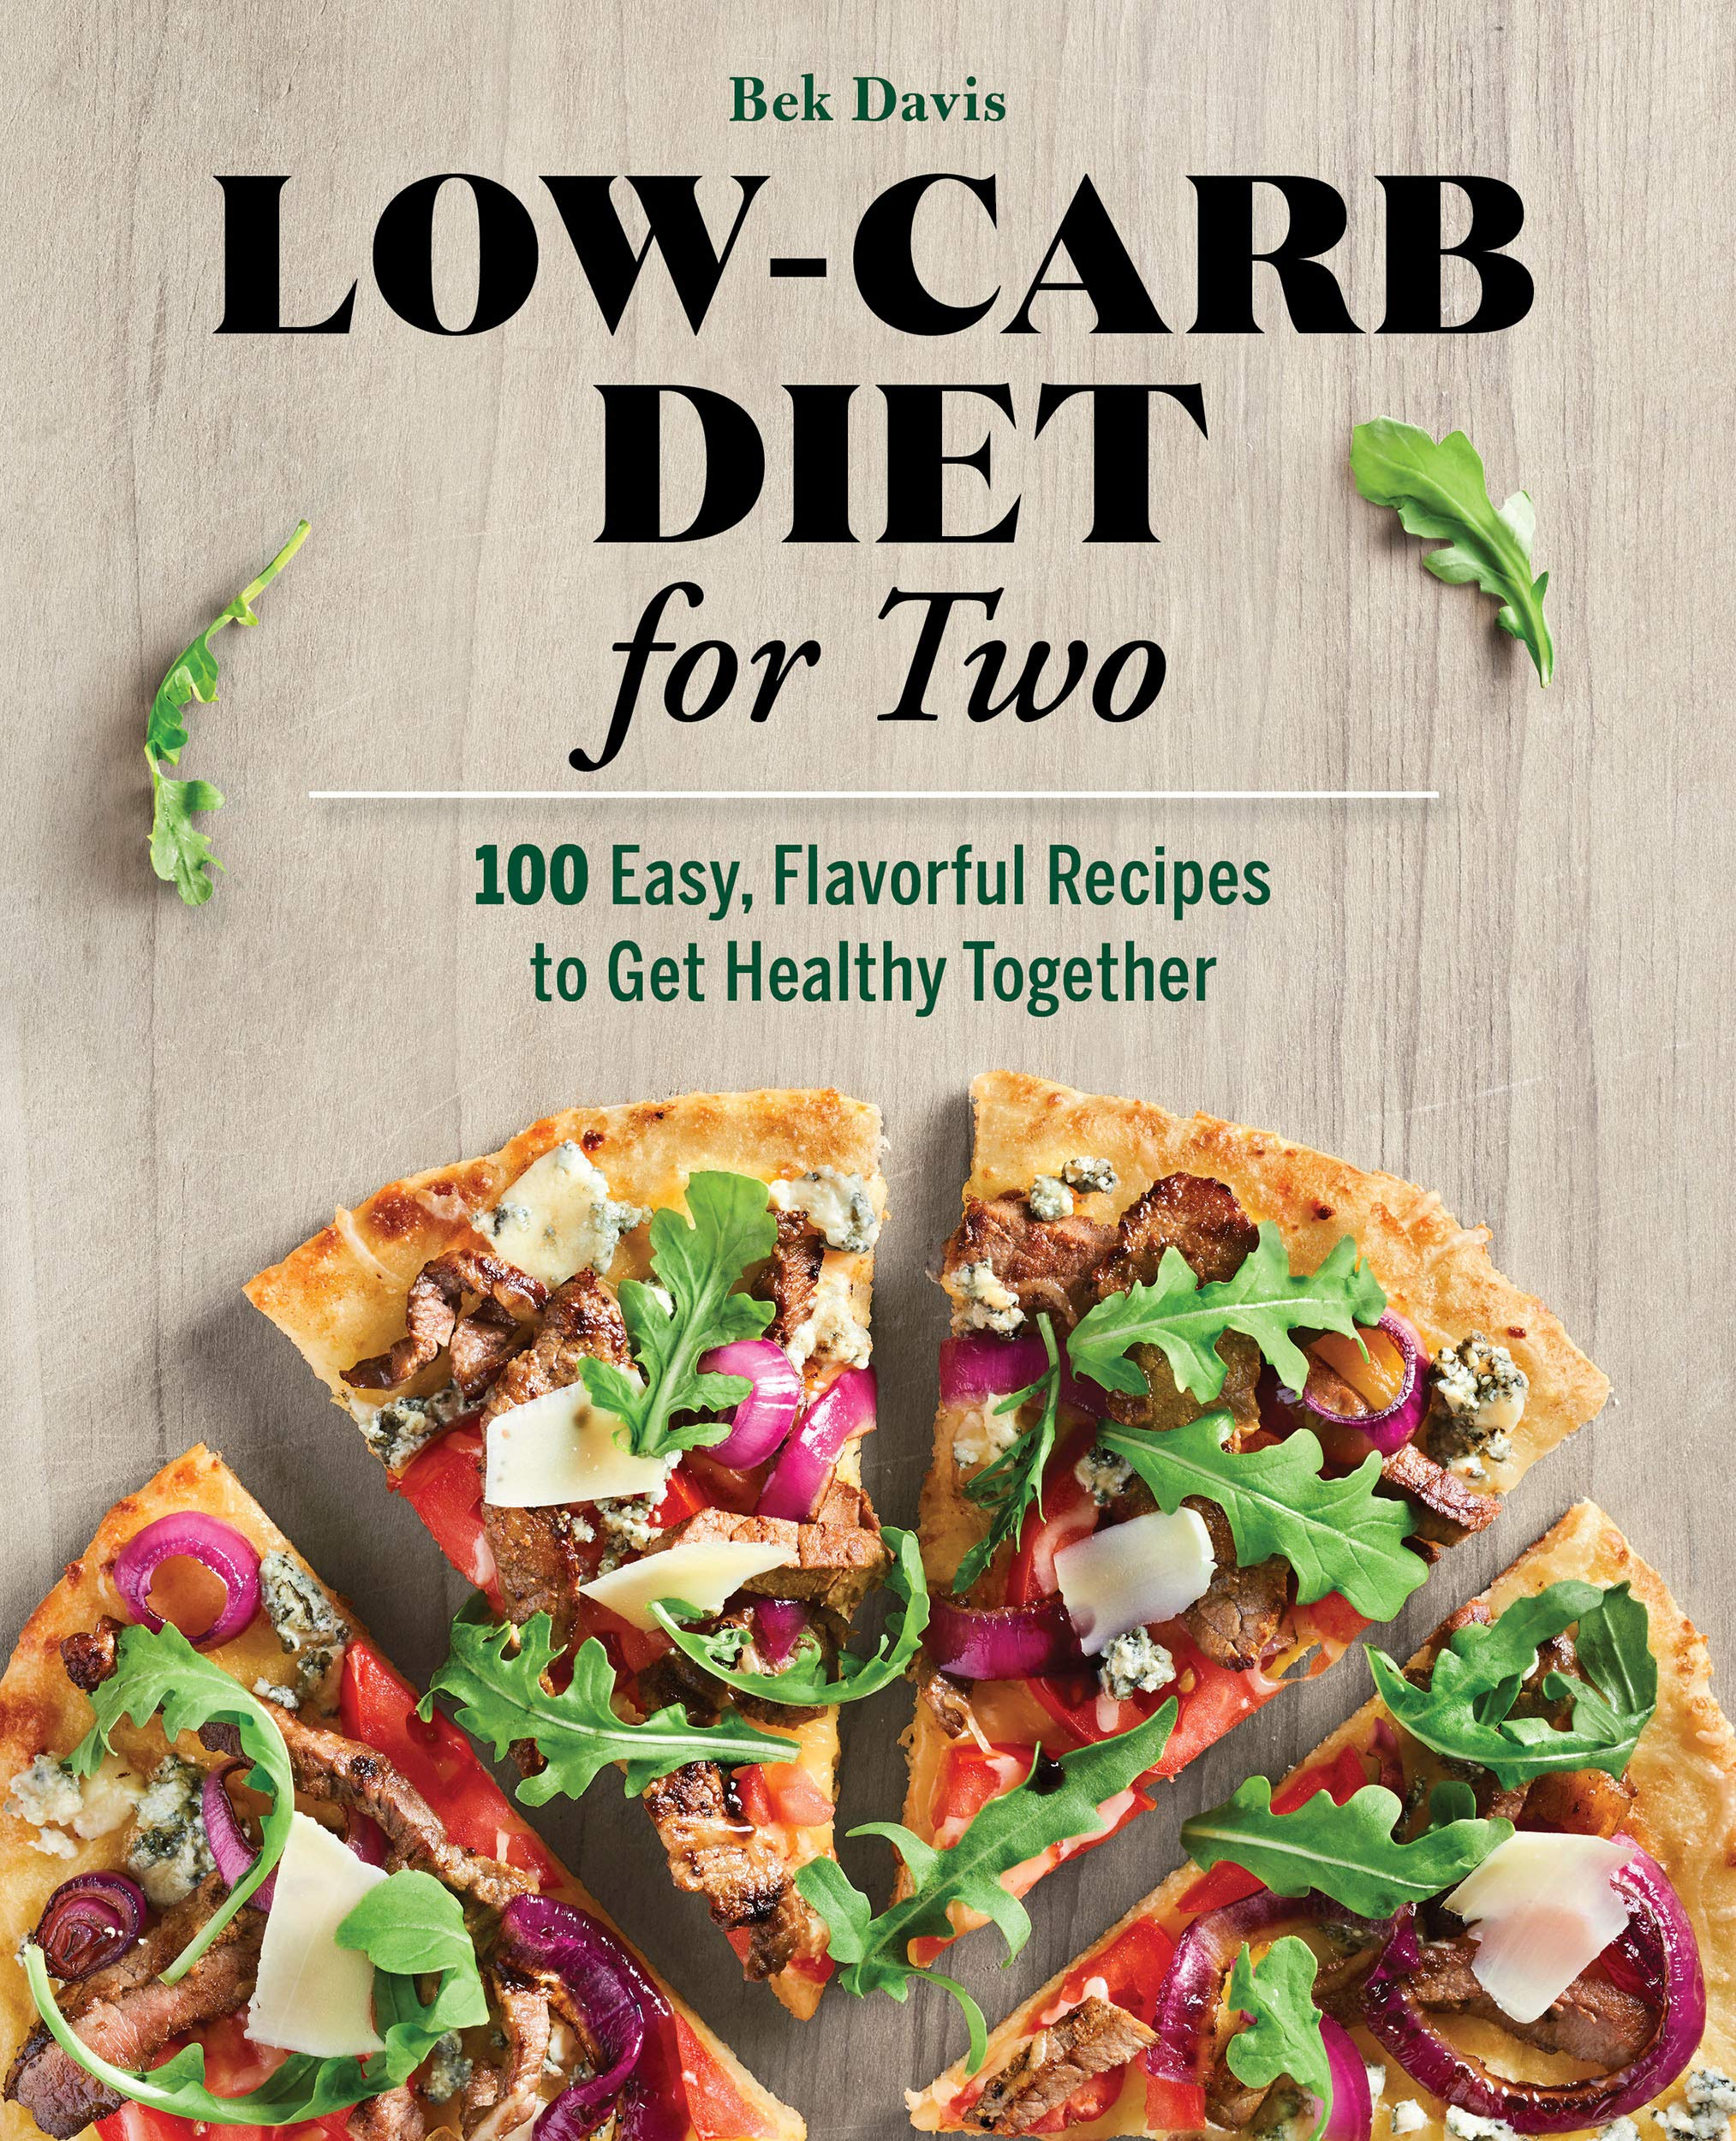 Low-Carb Diet for Two: 100 Easy, Flavorful Recipes to Get Healthy Together 1